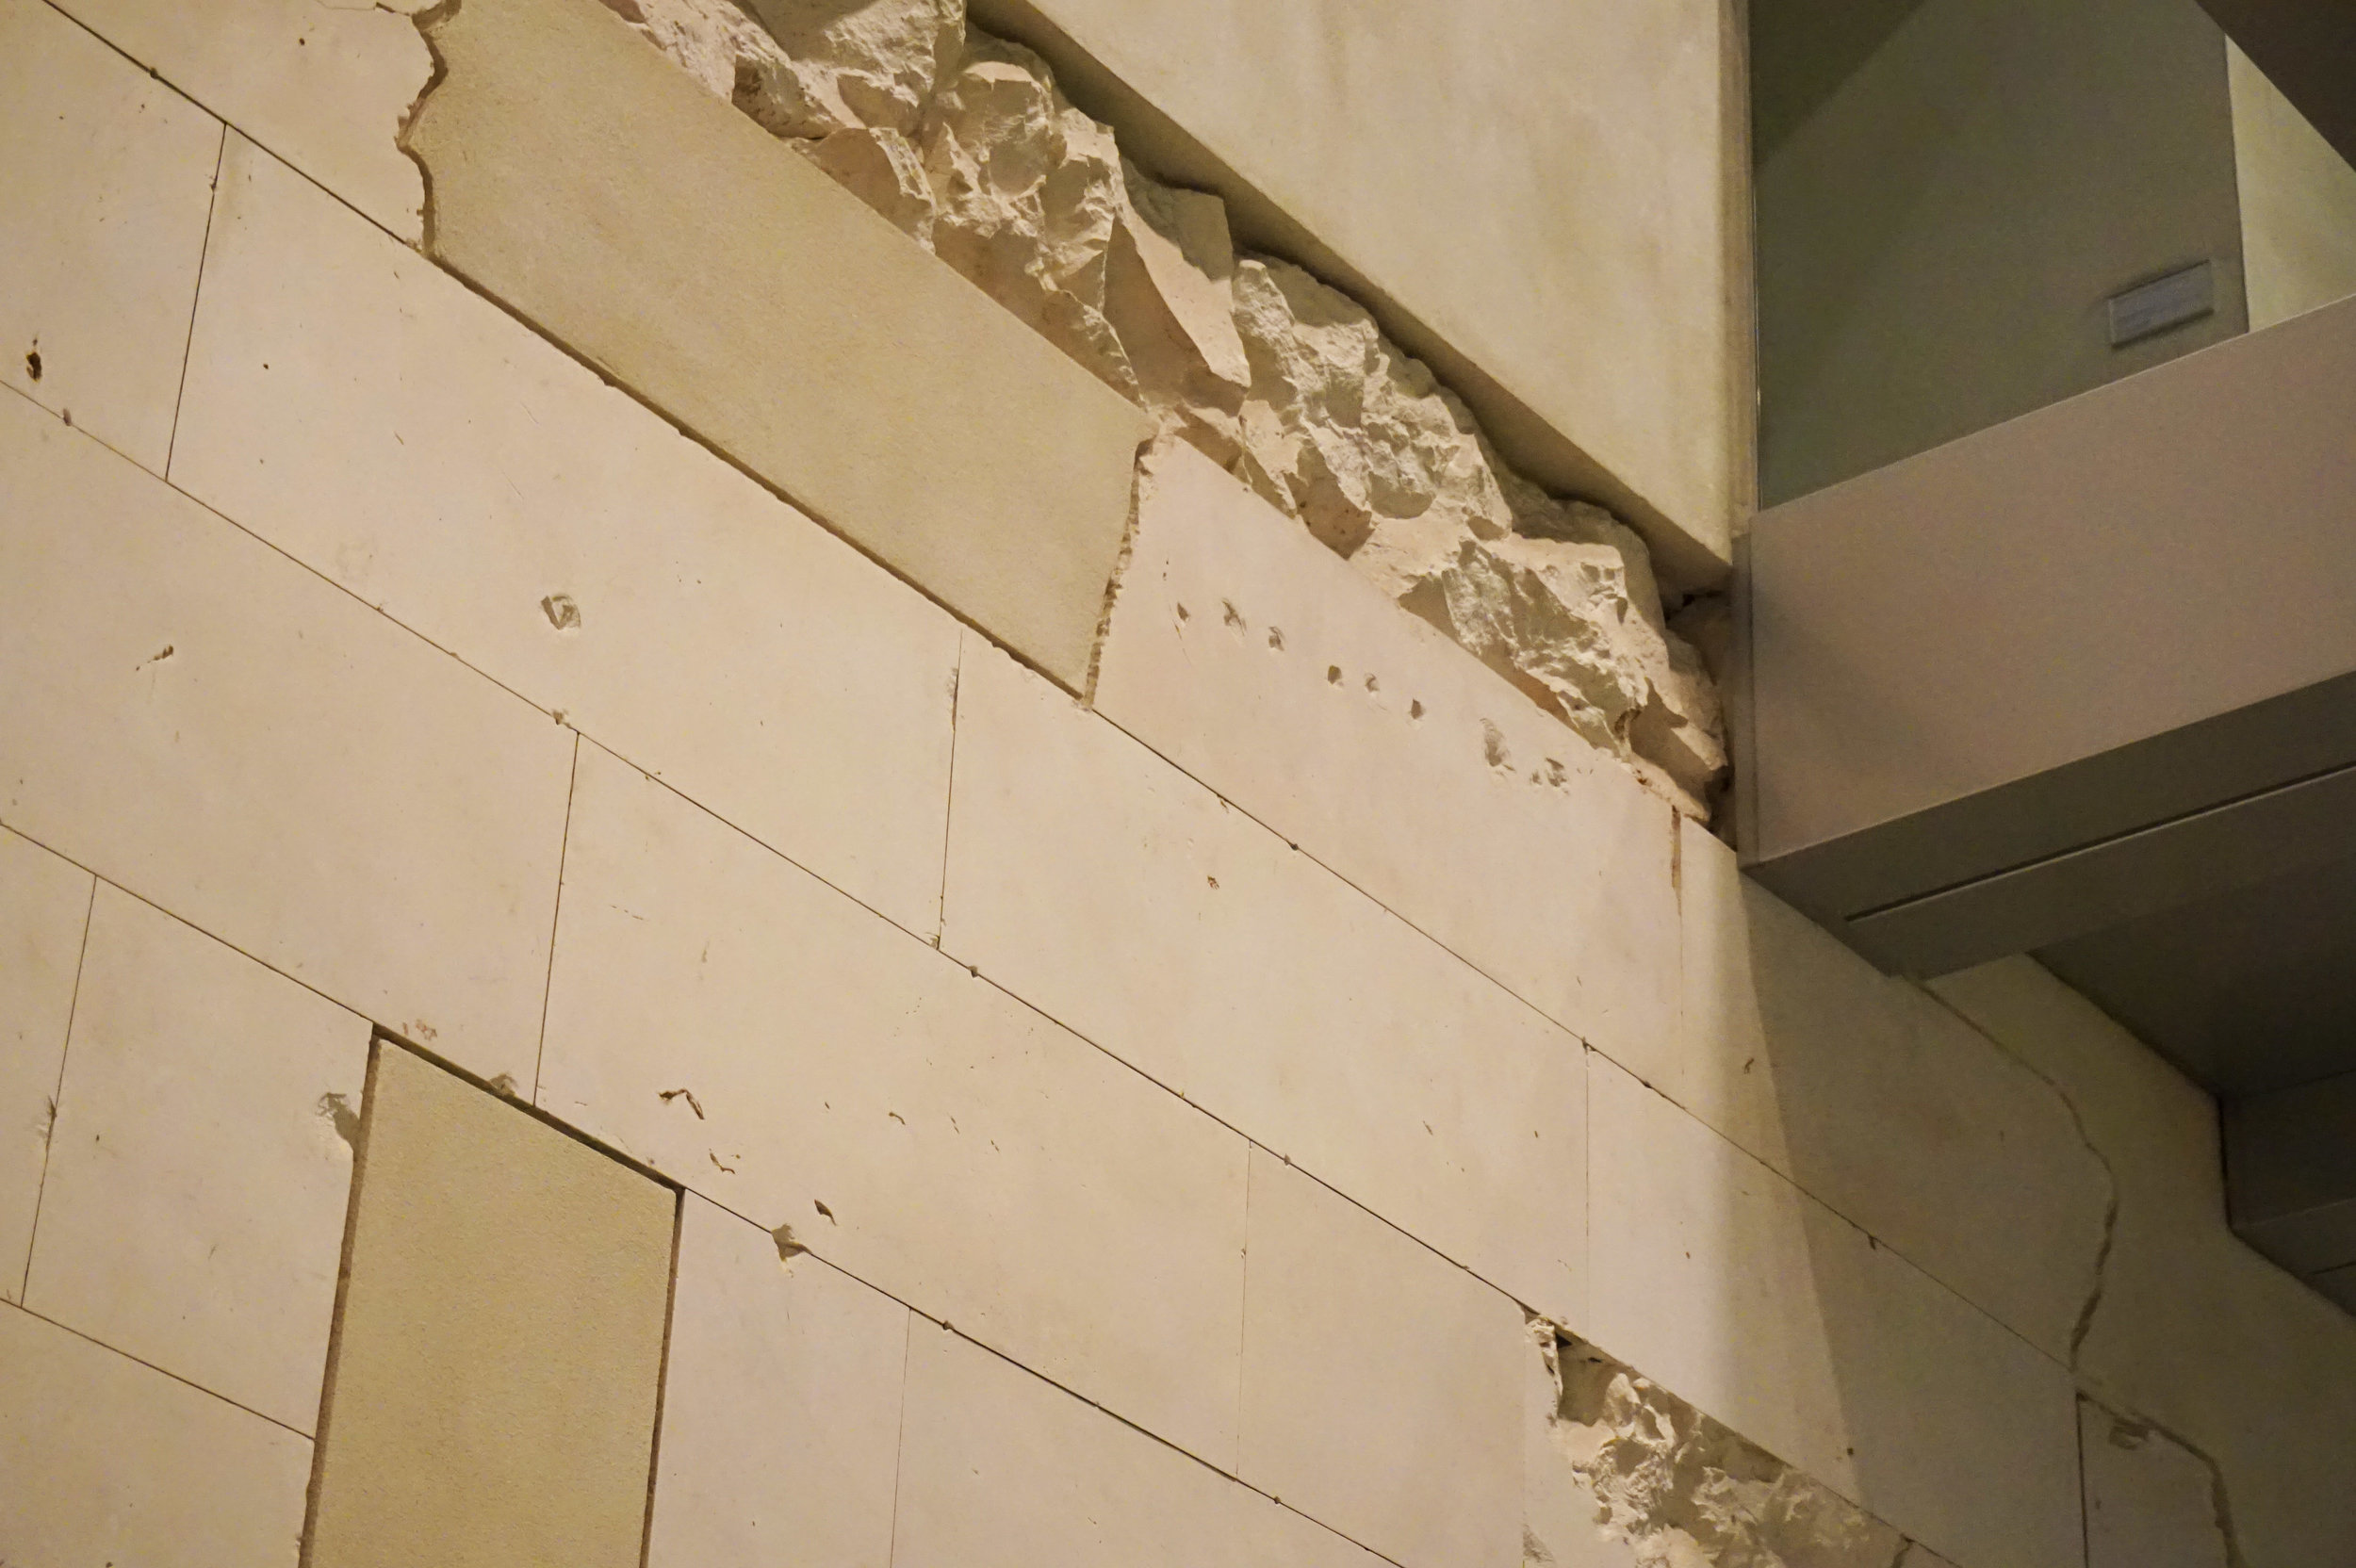 The holes on the Reichstag Building's walls are actual bullet marks, preserved to be a reminder of its painful past